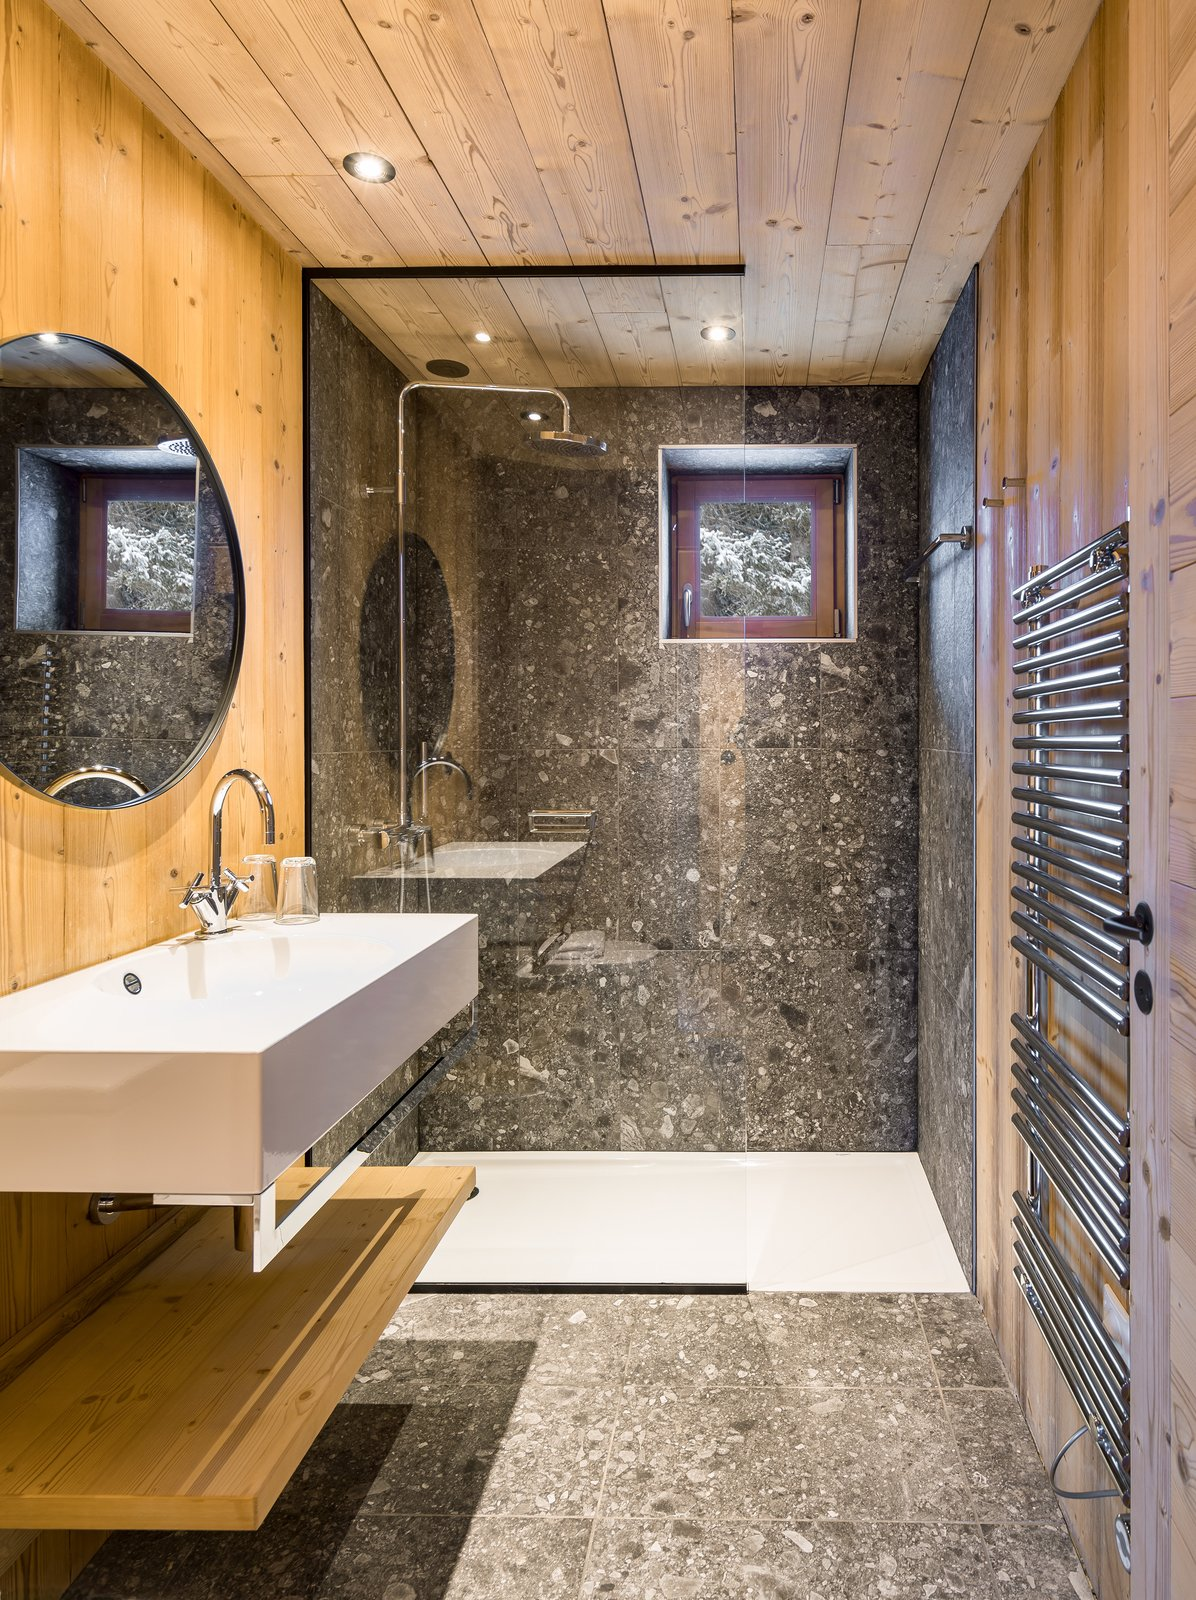 Tagged: Bath Room, Terrazzo Floor, Vessel Sink, and Wall Mount Sink.  Mountain House by studio razavi architecture